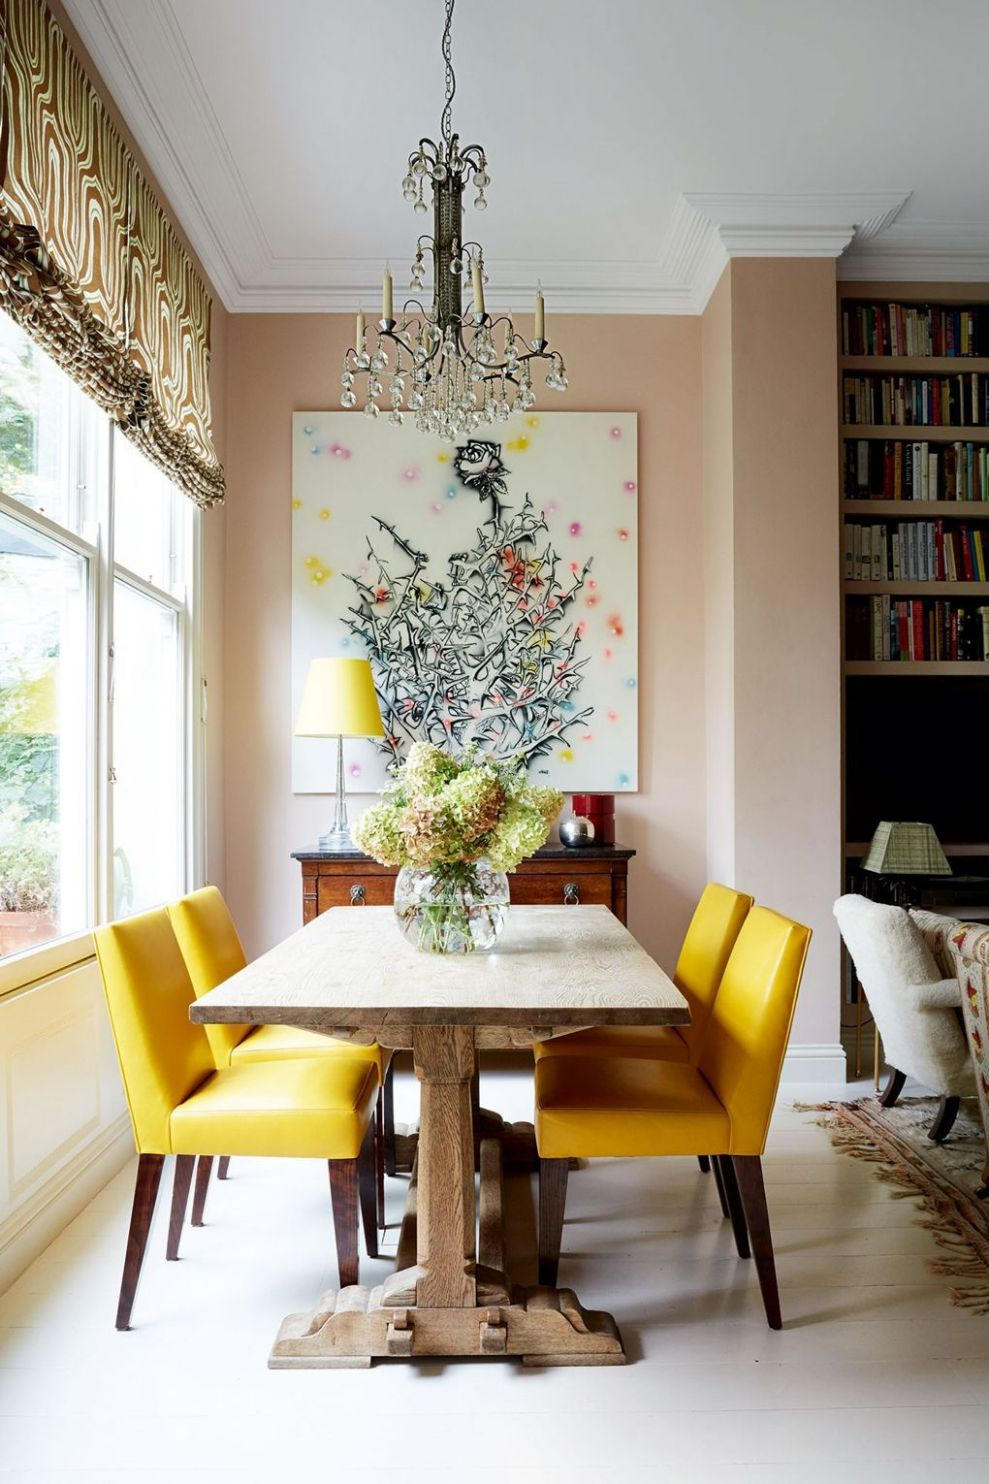 Small dining room ideas | Yellow dining room, Dining room small - small dining room ideas uk